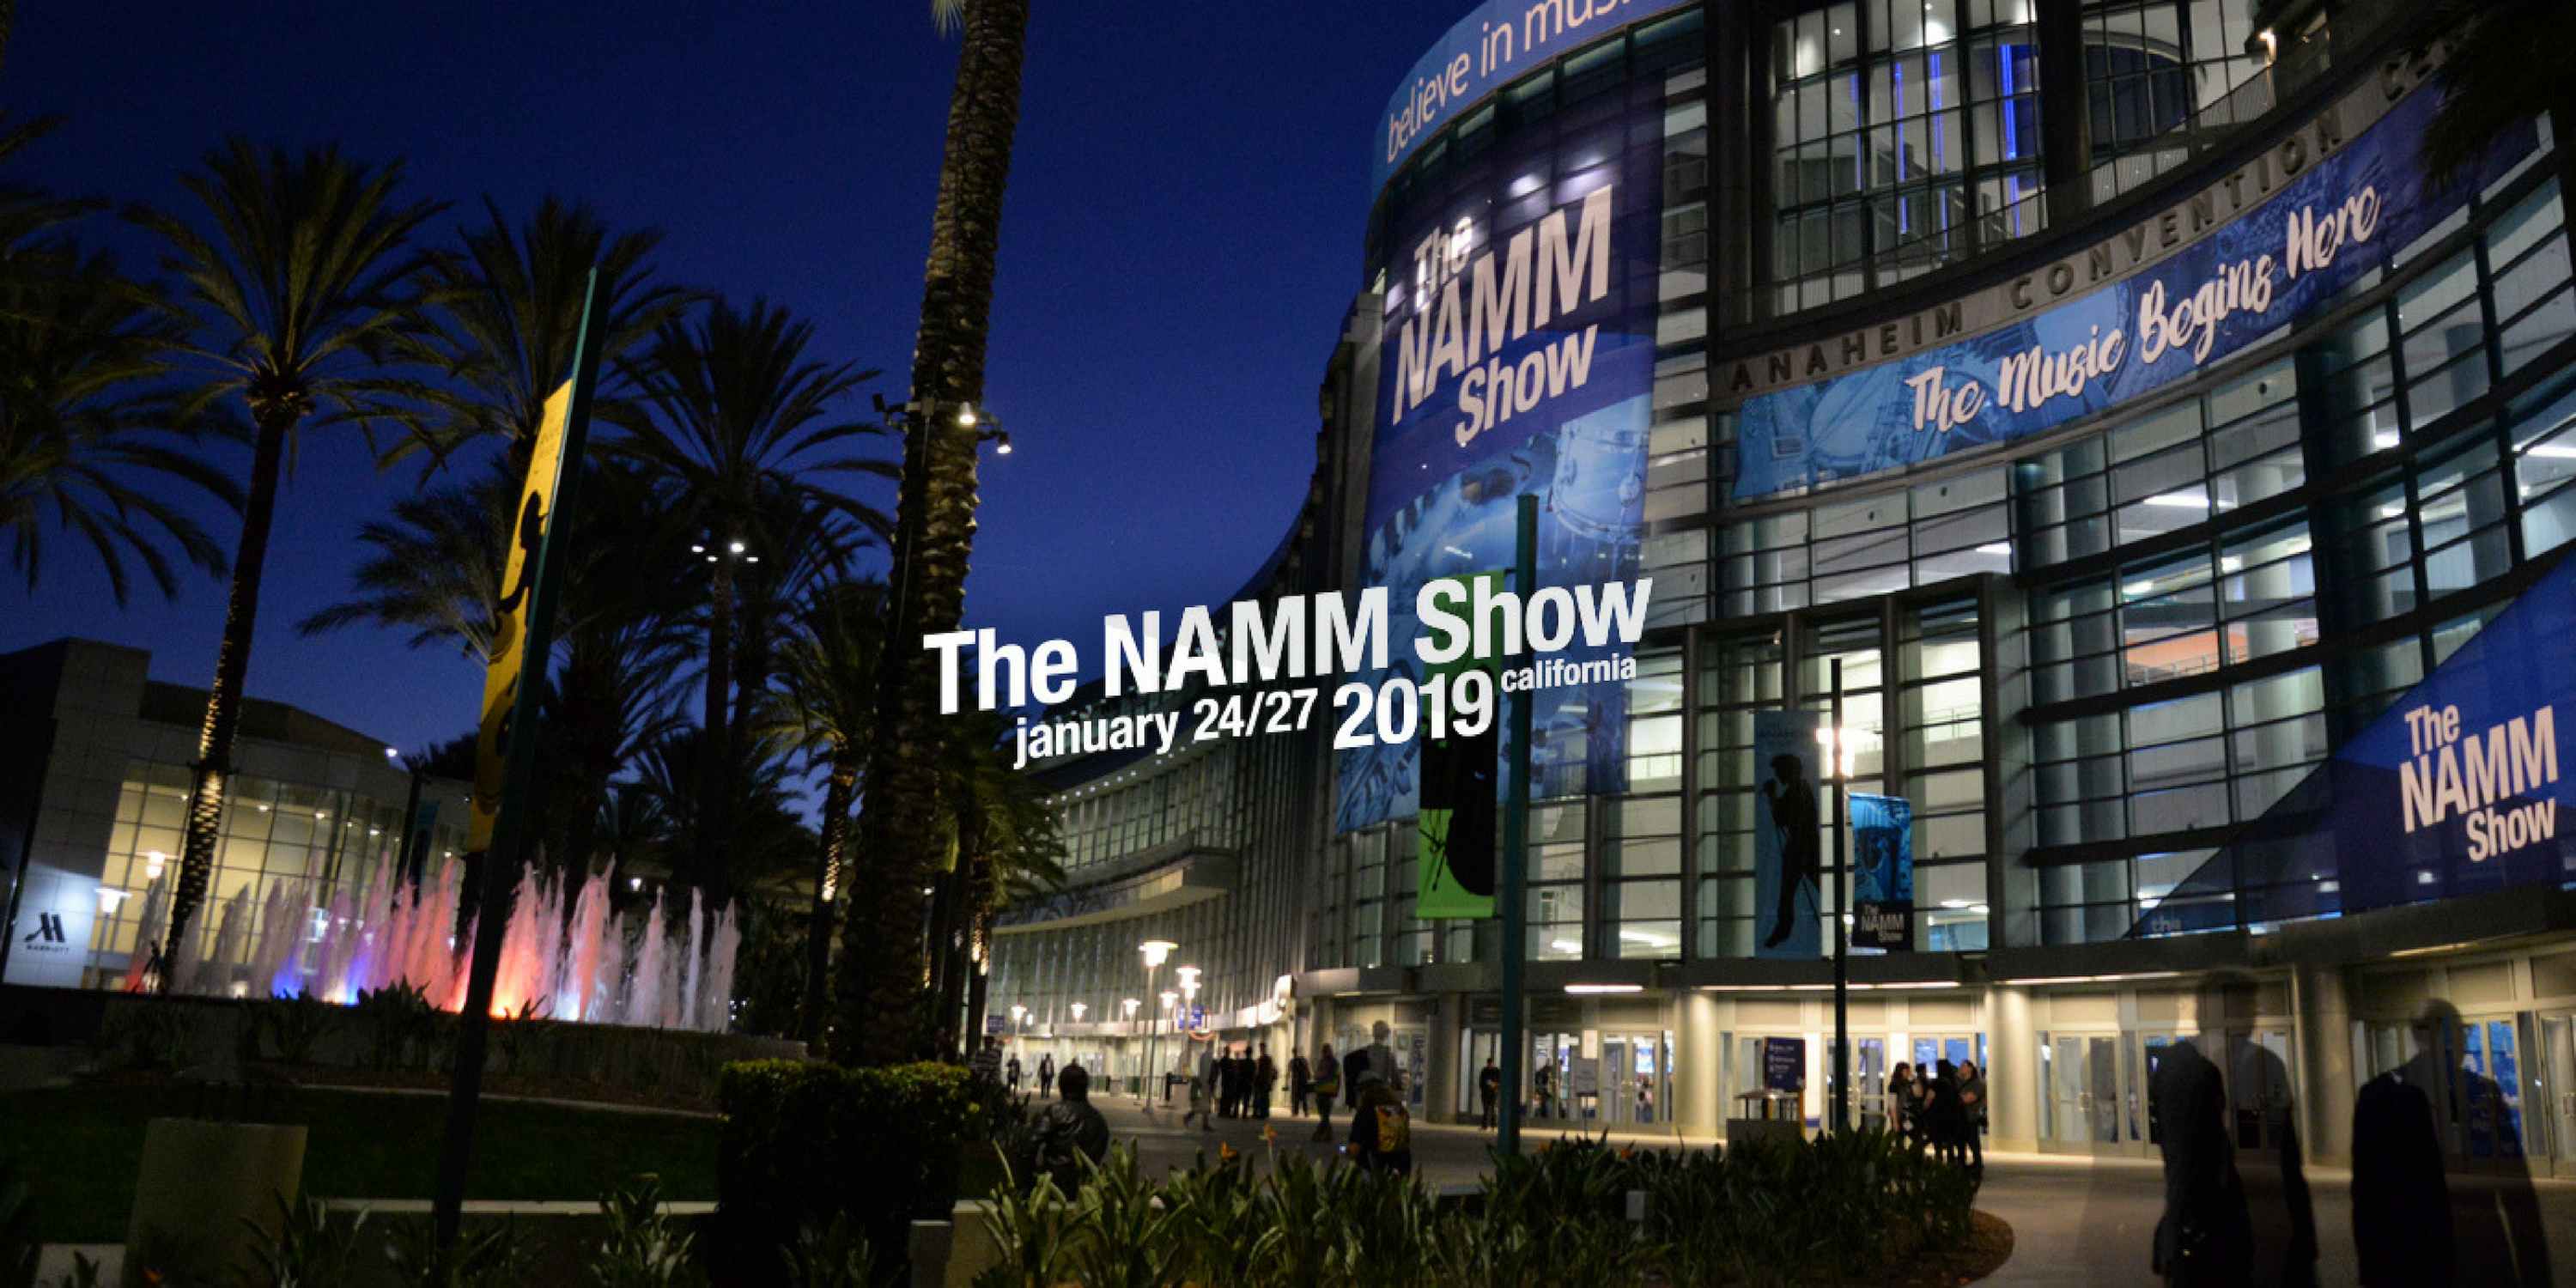 Adam Hall Group Showcases with New US Subsidiary at NAMM